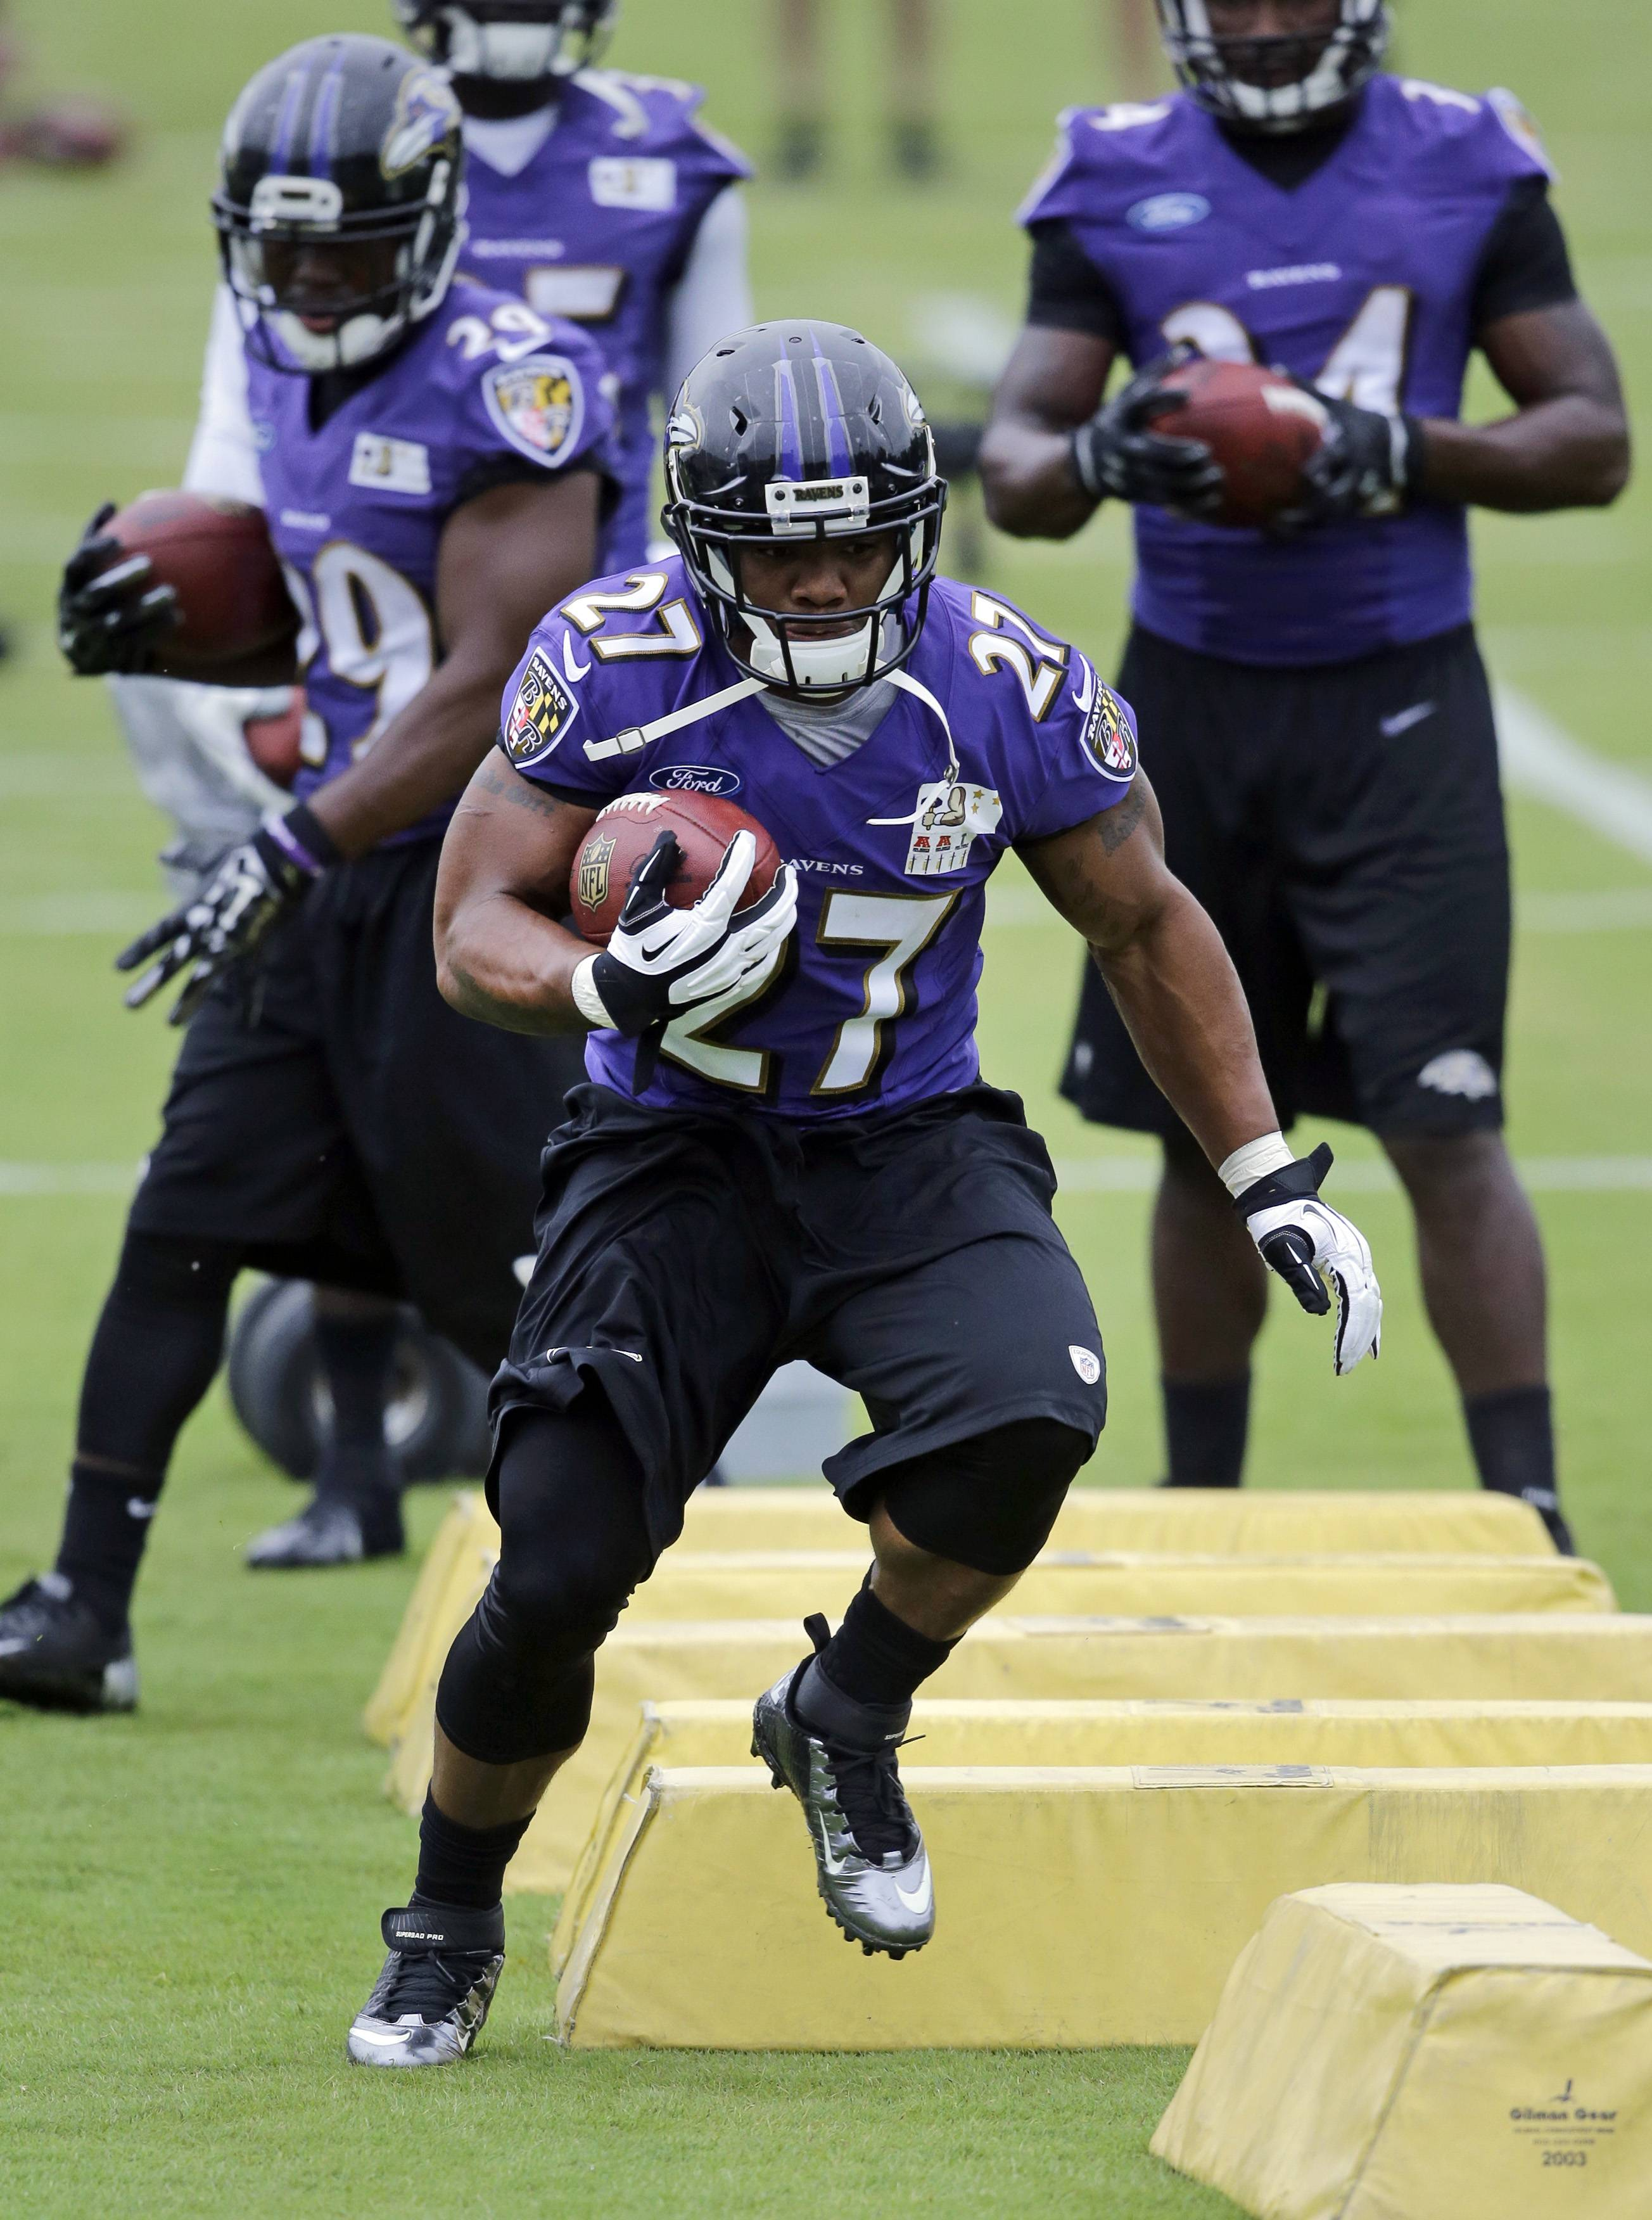 Baltimore Ravens running back Ray Rice received a two-game suspension from the NFL on Thursday following his offseason arrest for domestic violence. Rice will miss the season opener against AFC North champion Cincinnati on Sept. 7 and the Sept. 11 game on Thursday night against the Pittsburgh Steelers.